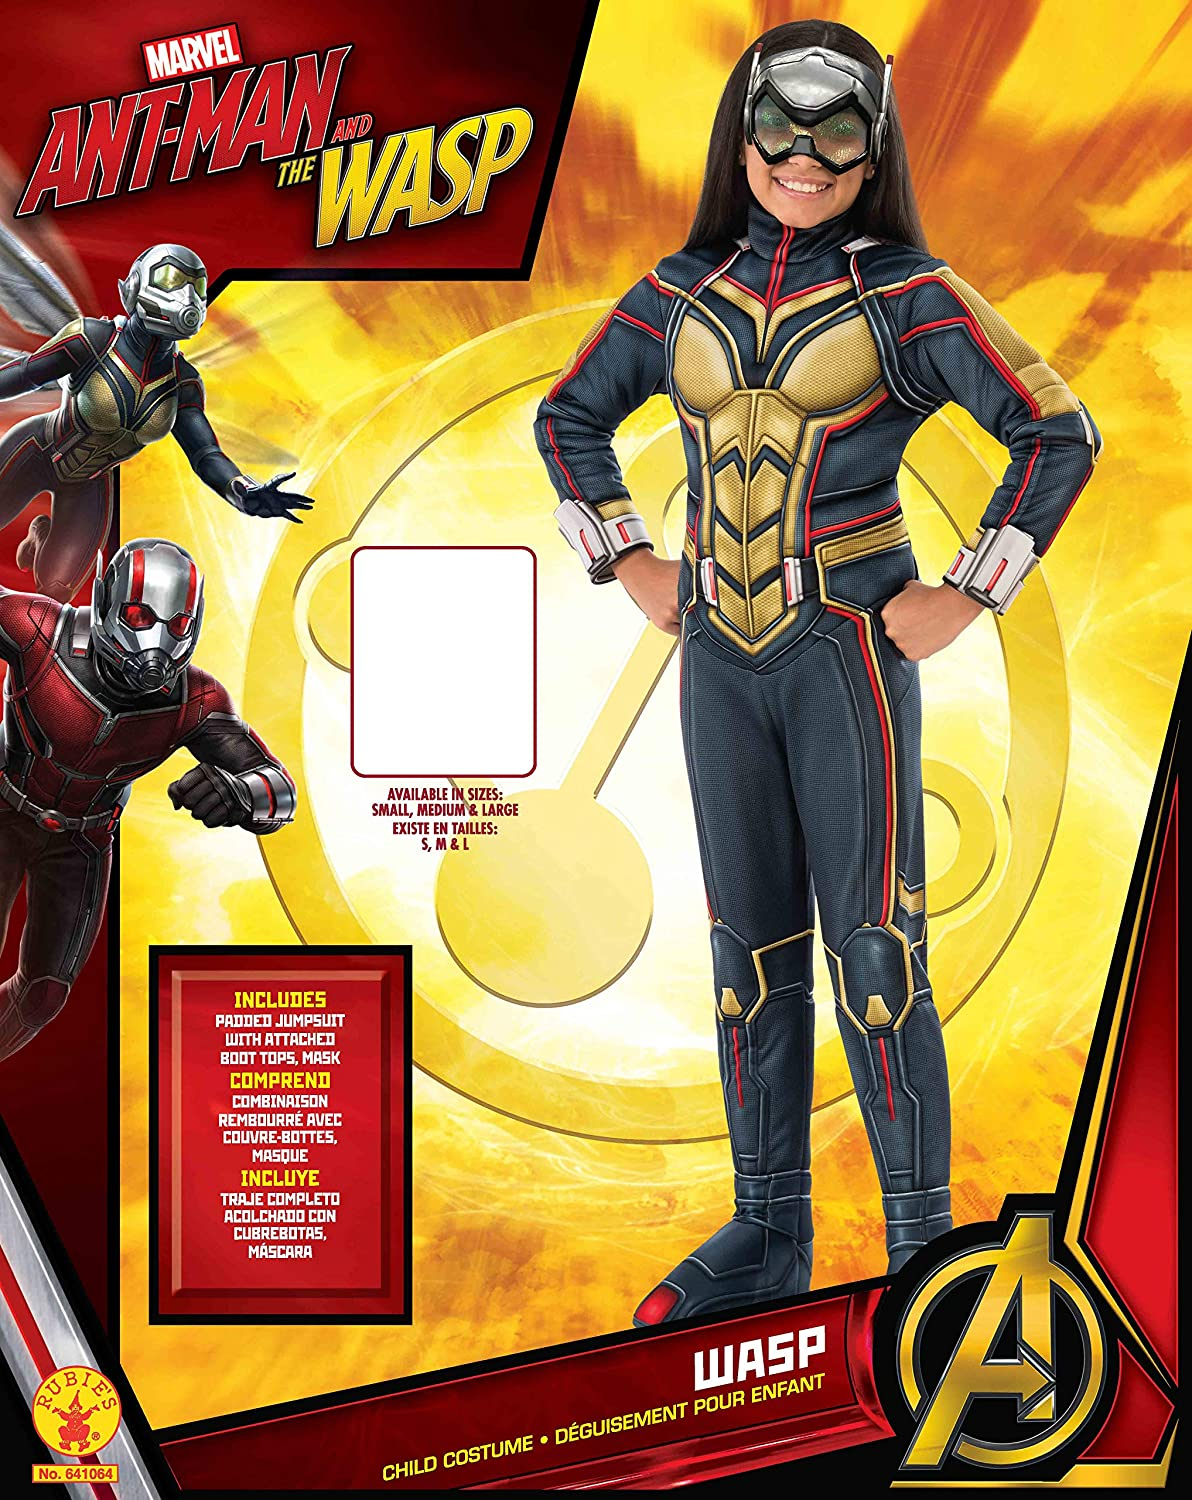 Amazon.com: Rubies Ant-Man Girls Deluxe Wasp Costume, Small: Toys & Games